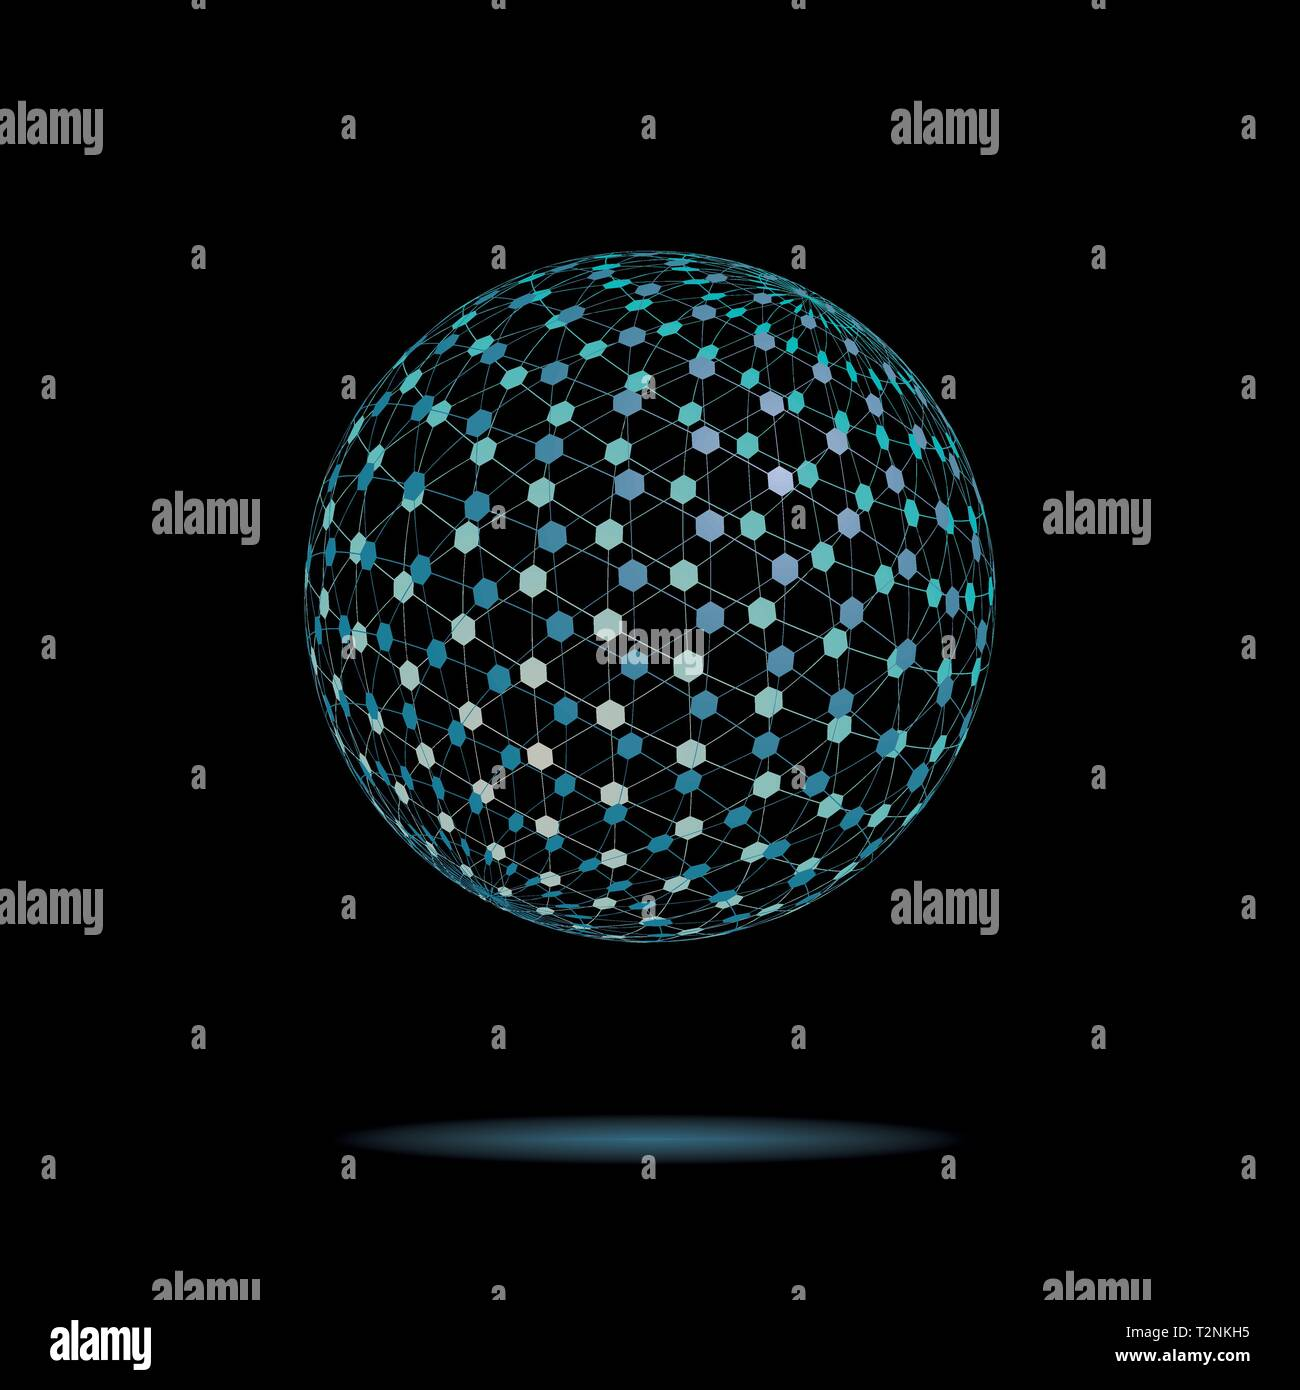 Abstract levitating transparent tesseract sphere on black background vector illustration Stock Vector